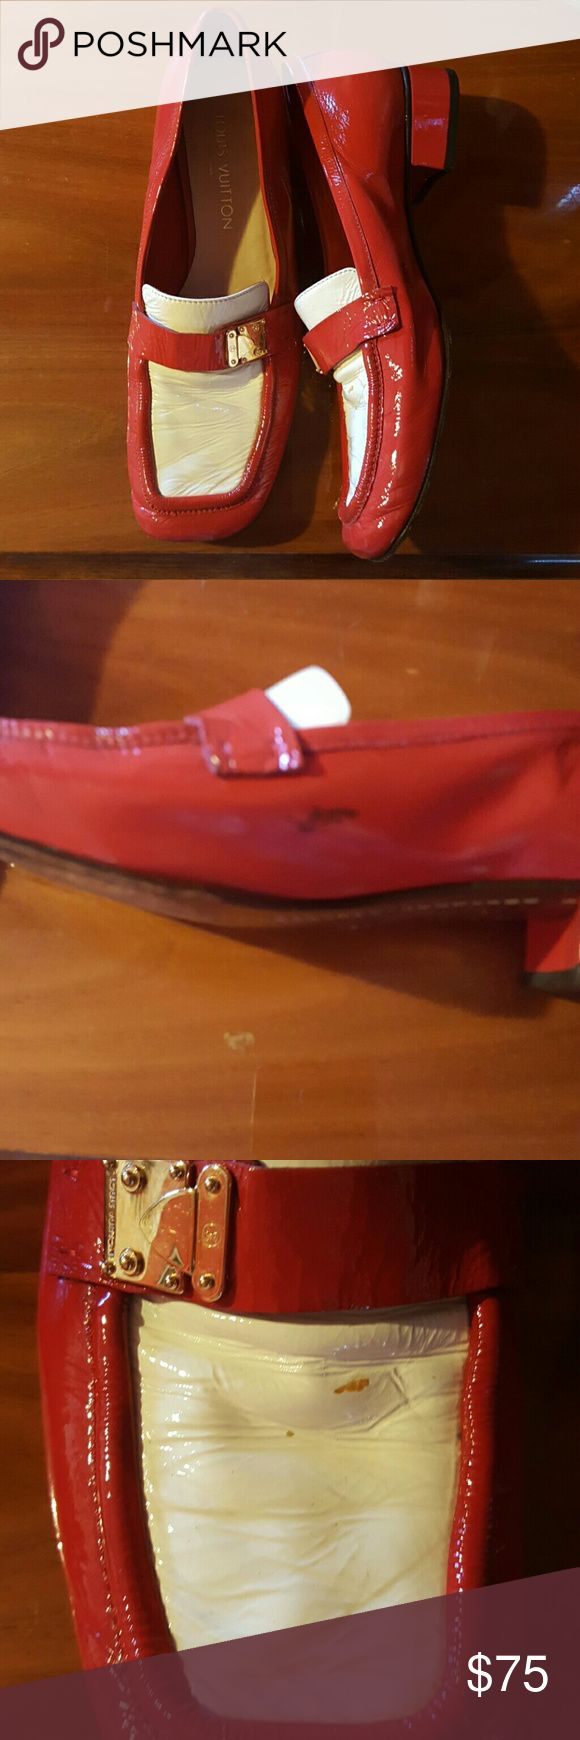 Louis Vuitton loafers Sz 40 These are  great red and white patent leather loafers.  Discolorations noted in pics Louis Vuitton Shoes Flats & Loafers